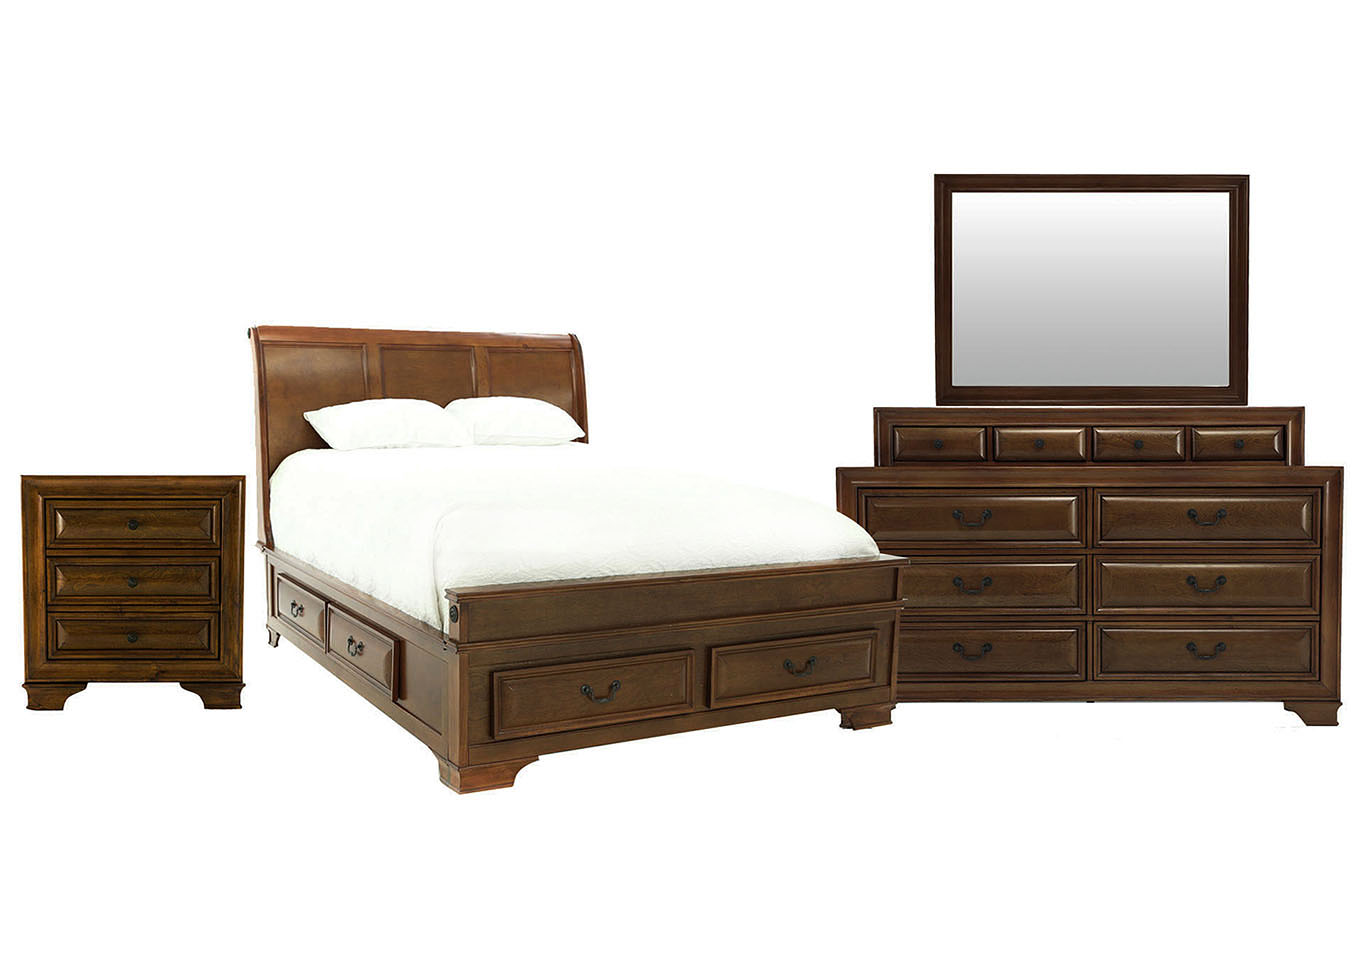 REMINGTON DARK CHERRY QUEEN BEDROOM SET,LIFESTYLE FURNITURE